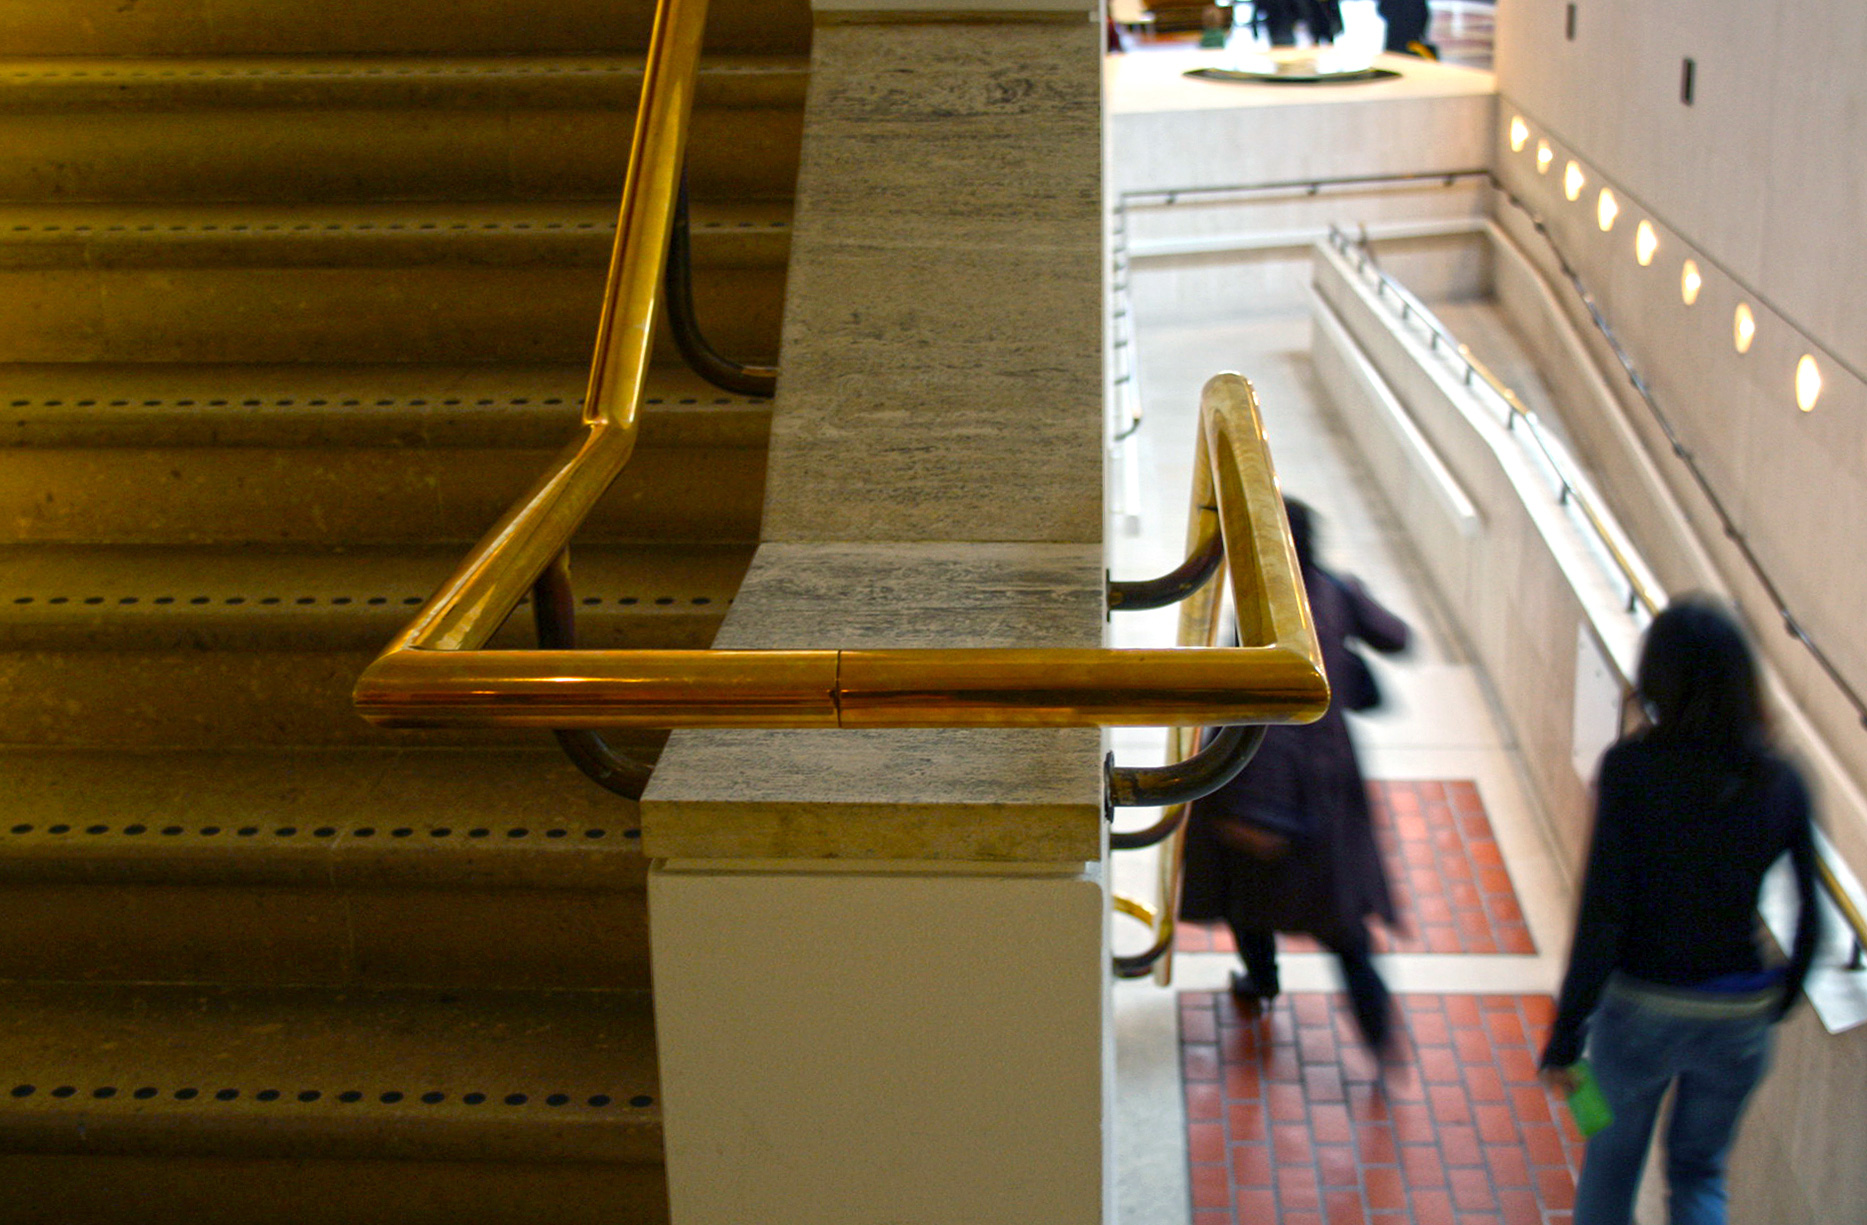 Brass handrails at the British Library in London. Note that this building predates current regulations regarding stairs, landings and ramps!